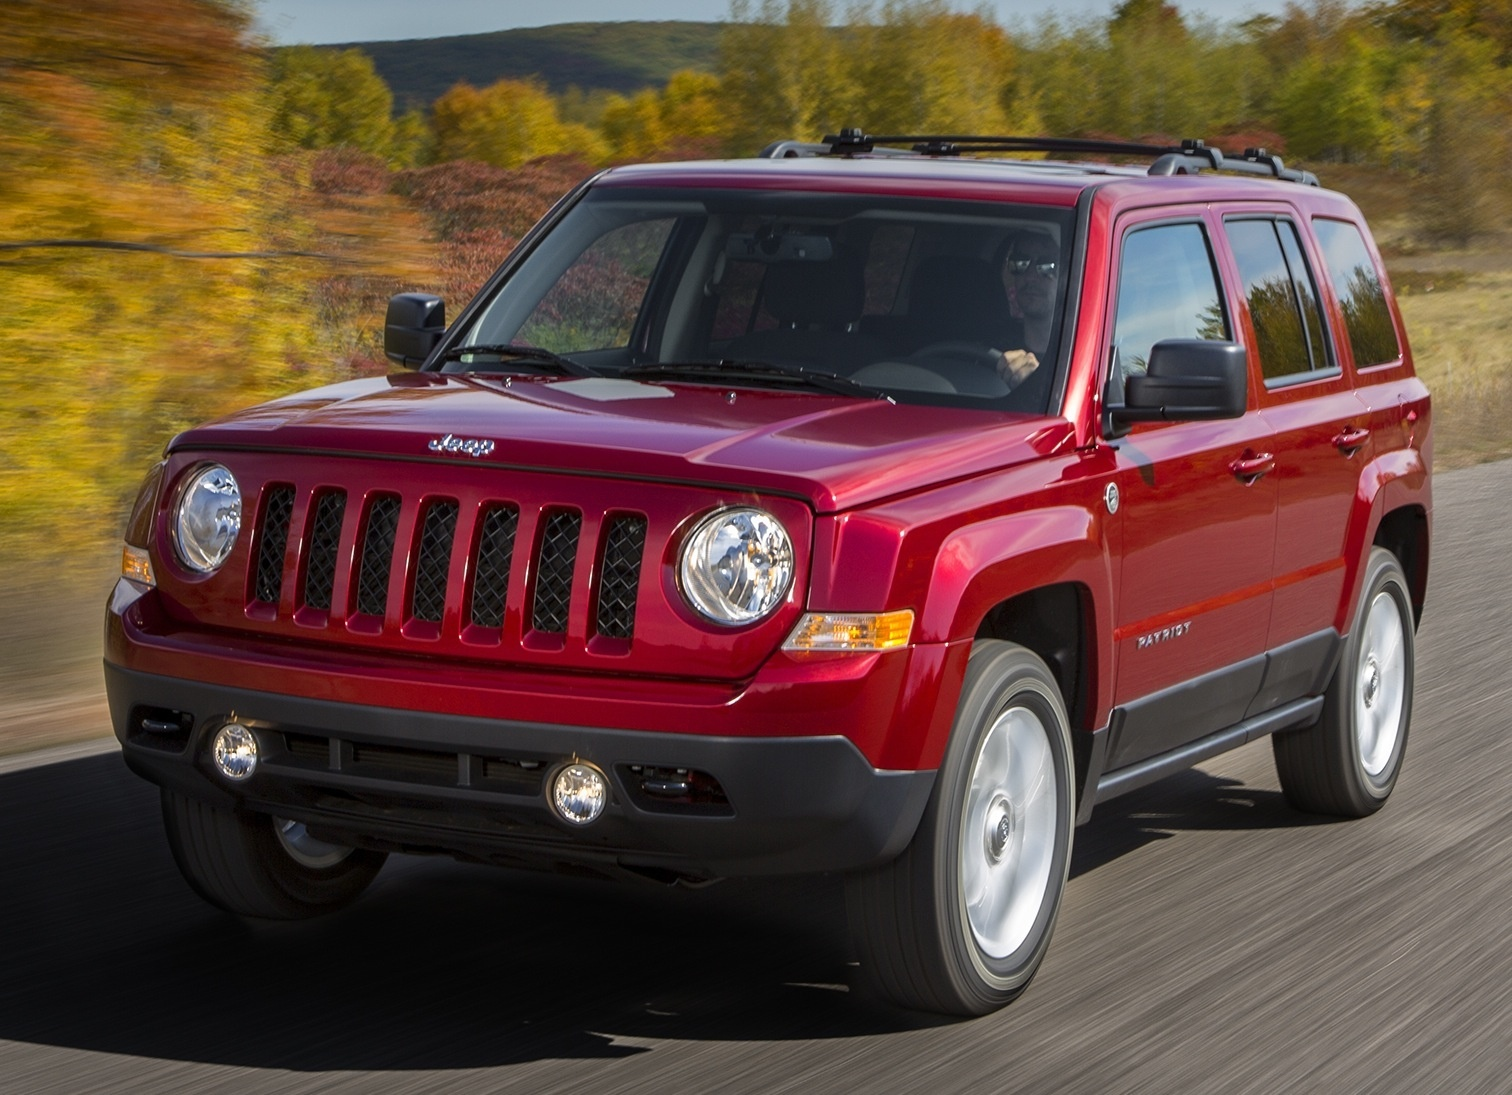 2015 jeep patriot - overview - cargurus